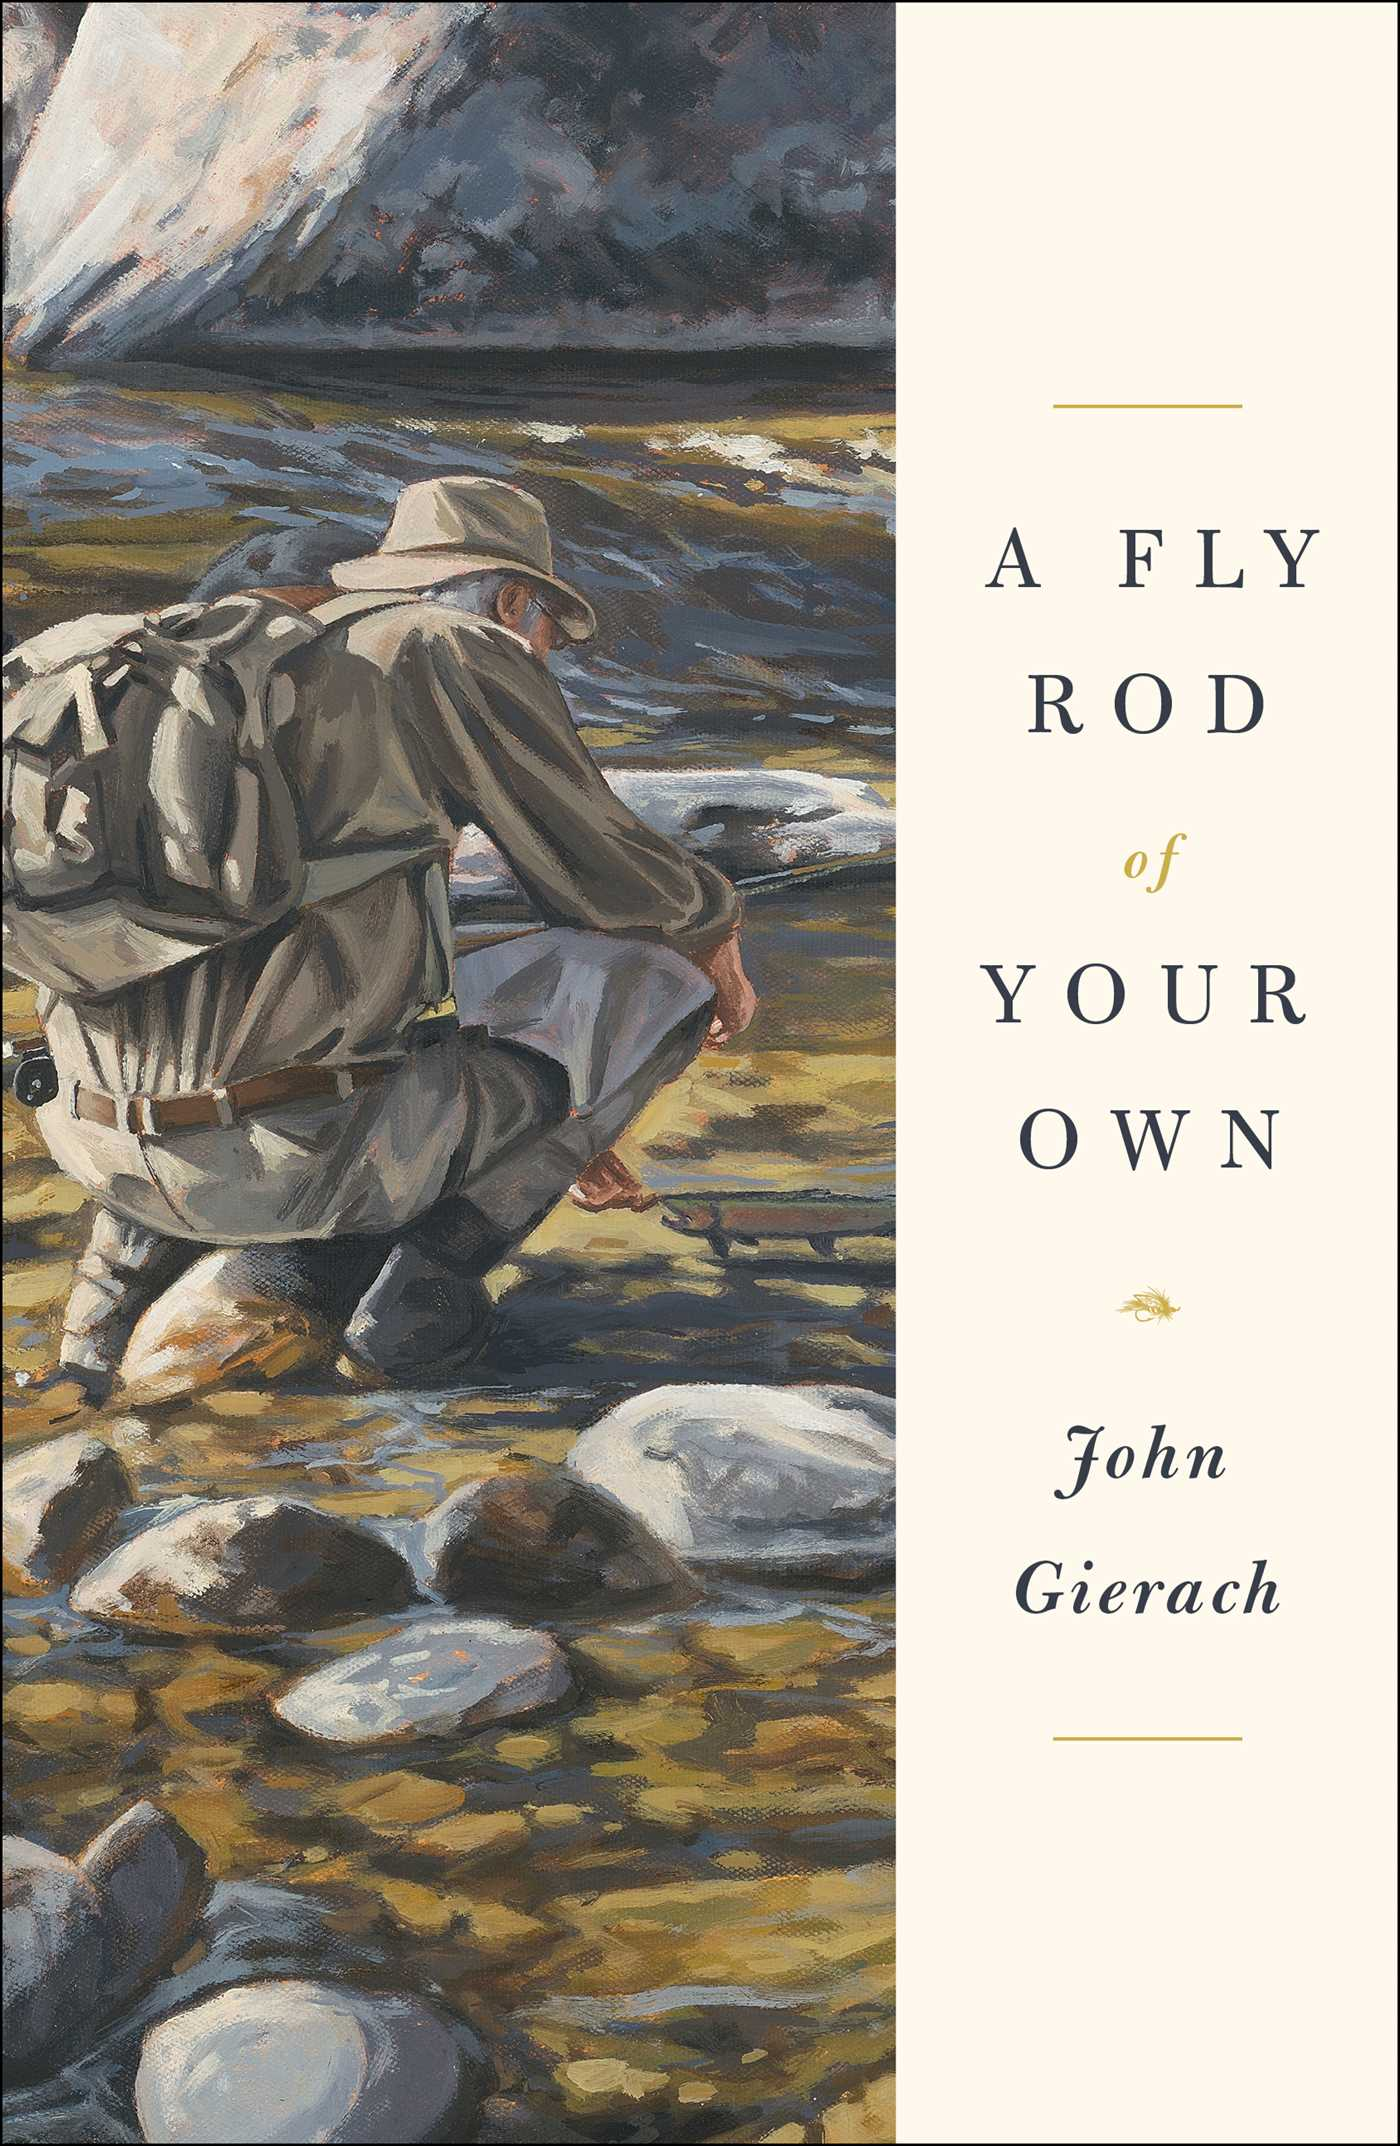 John Gierach: Latest Book — Housatonic River Outfitters